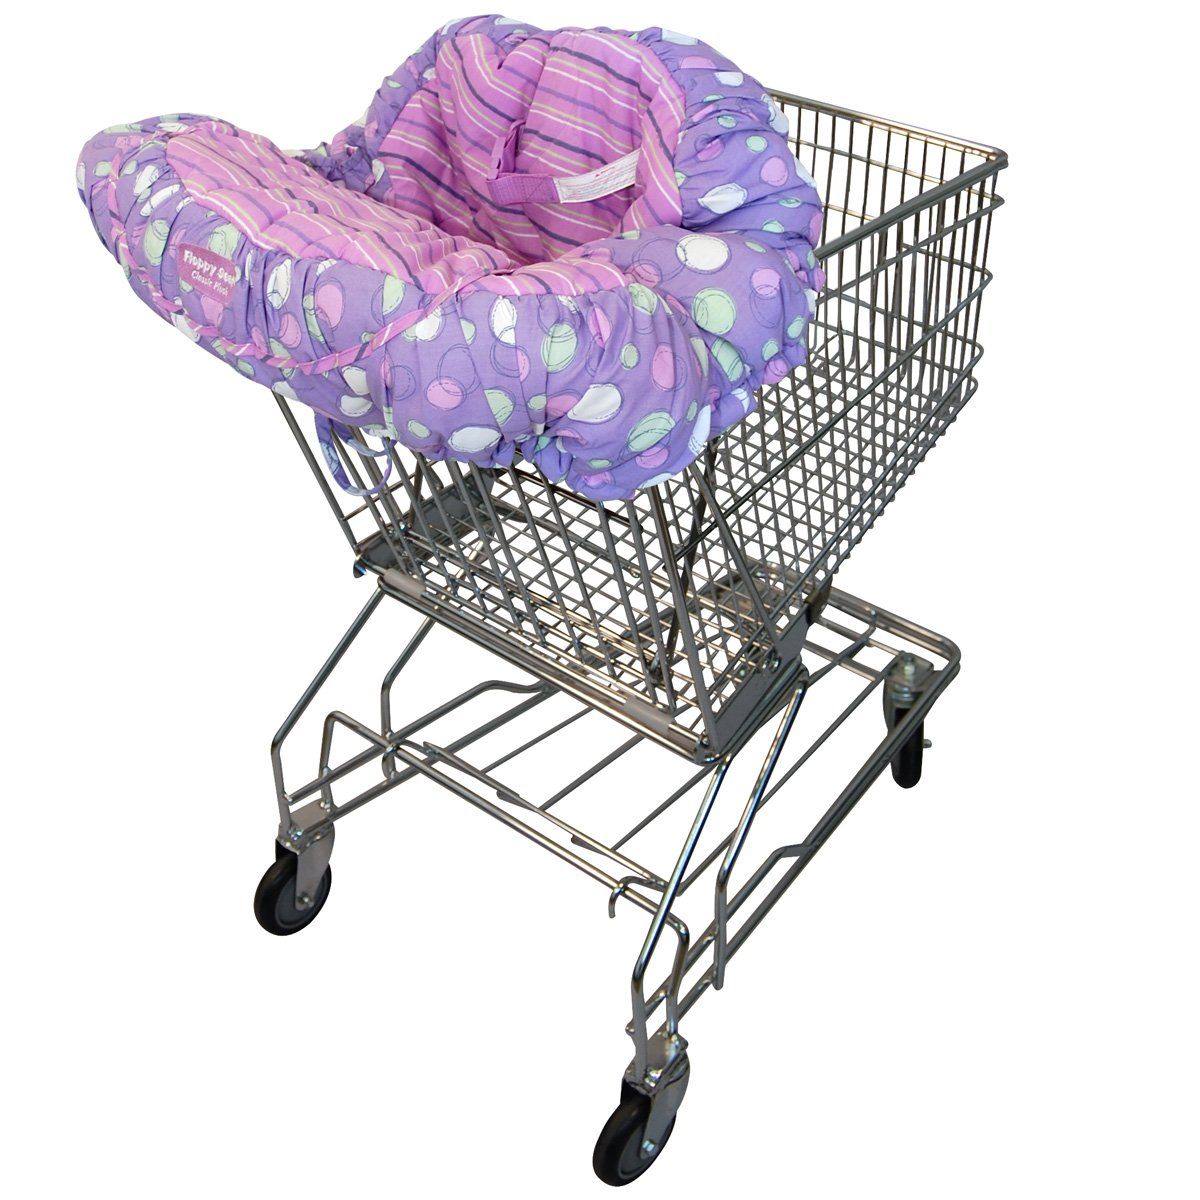 Floppy Seat® Shopping Cart and High Chair Cover, EZ Carry BagTM Style -Grape Sorbet Floppy Products Inc